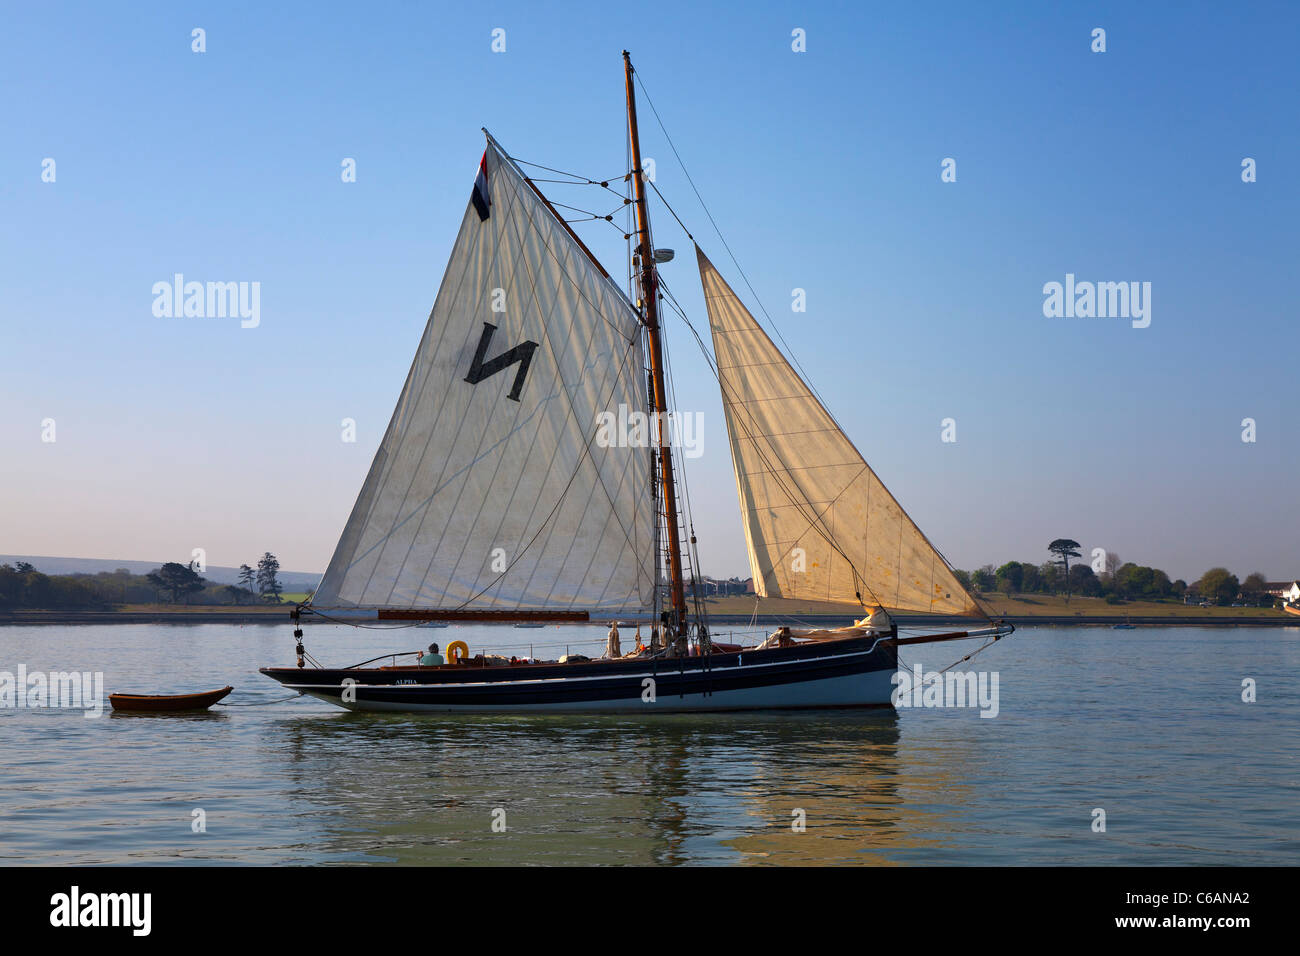 Bristol Channel Sailing Pilot Cutter Gaffer gaff rigged sail calm becalmed still peaceful gentle relaxed reflection - Stock Image